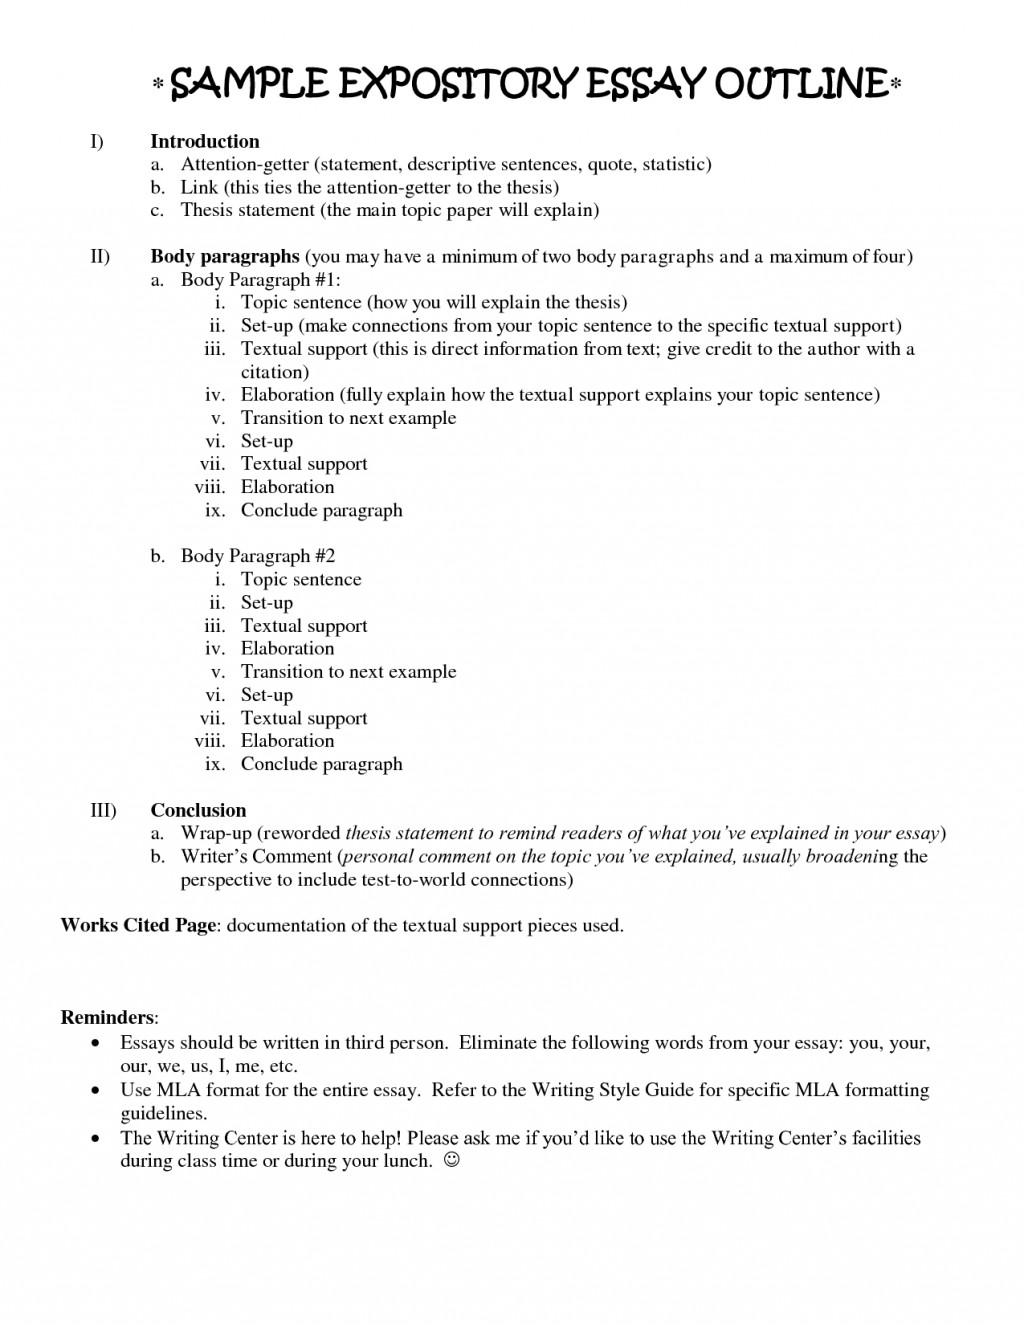 005 Essay Example Expository Awesome Topics For 4th Grade Prompt High School Prompts 7th Large